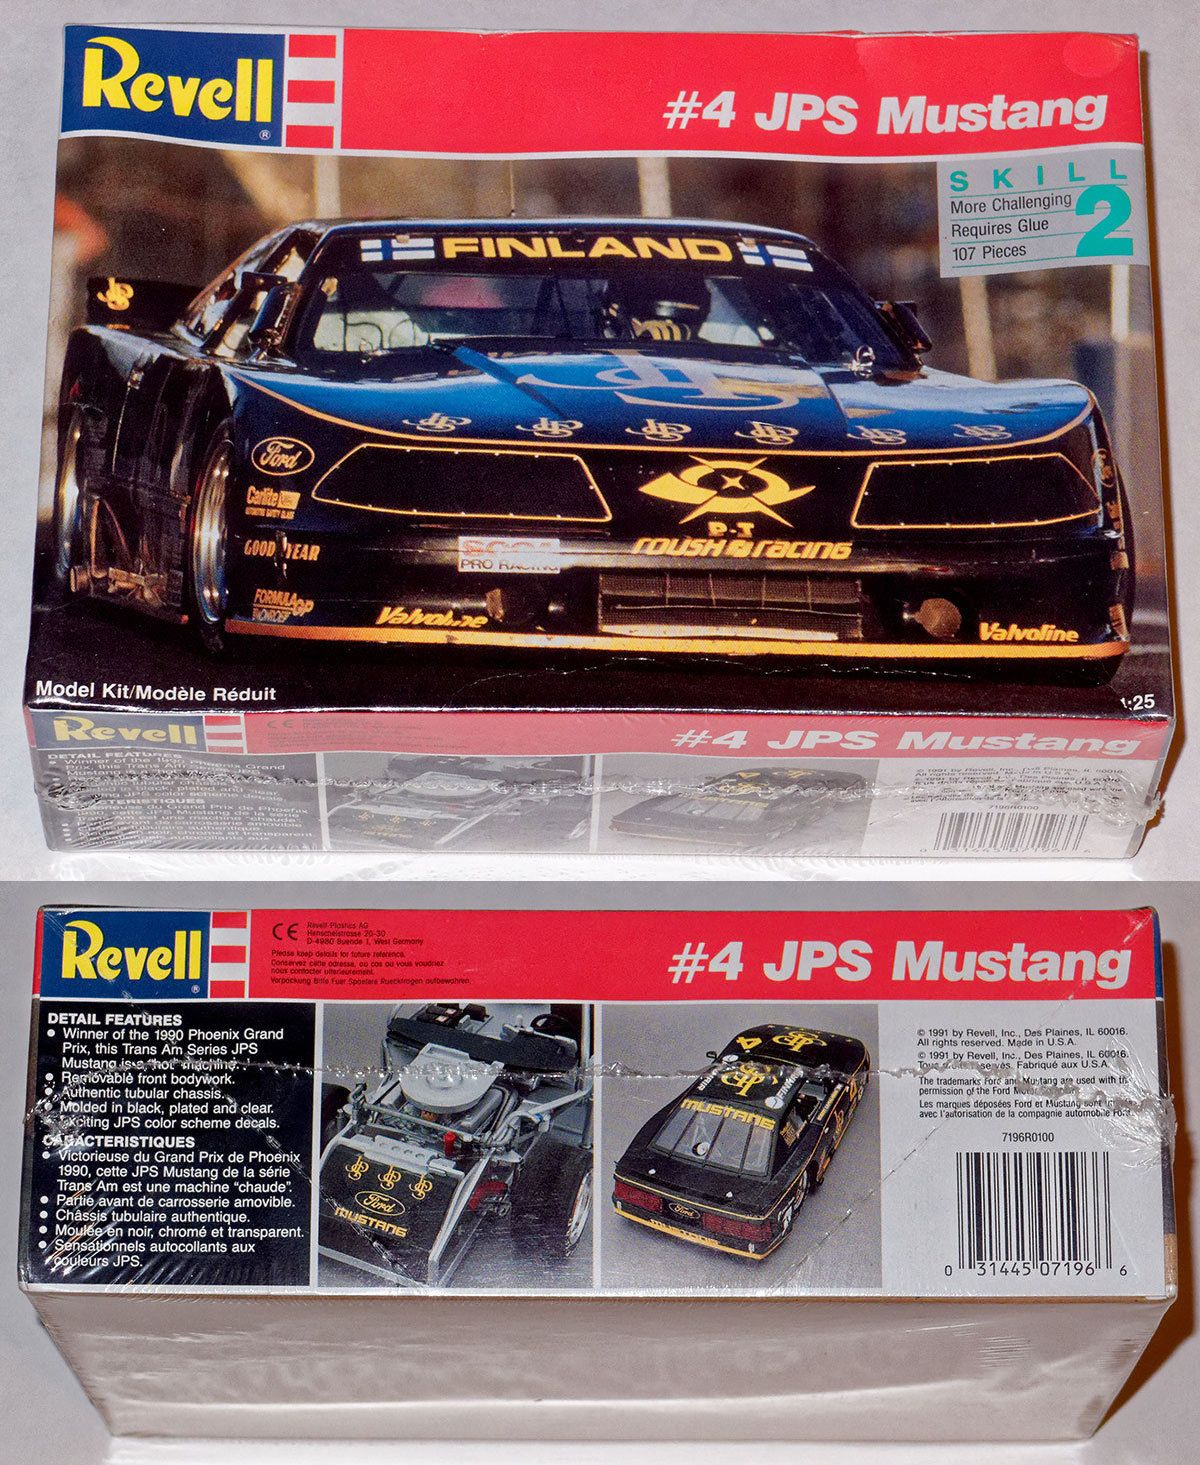 1 25 scale 145975 revell 1 25 4 jps mustang trans am series 1 25 scale 145975 revell 1 25 4 jps mustang trans am series racer sciox Gallery